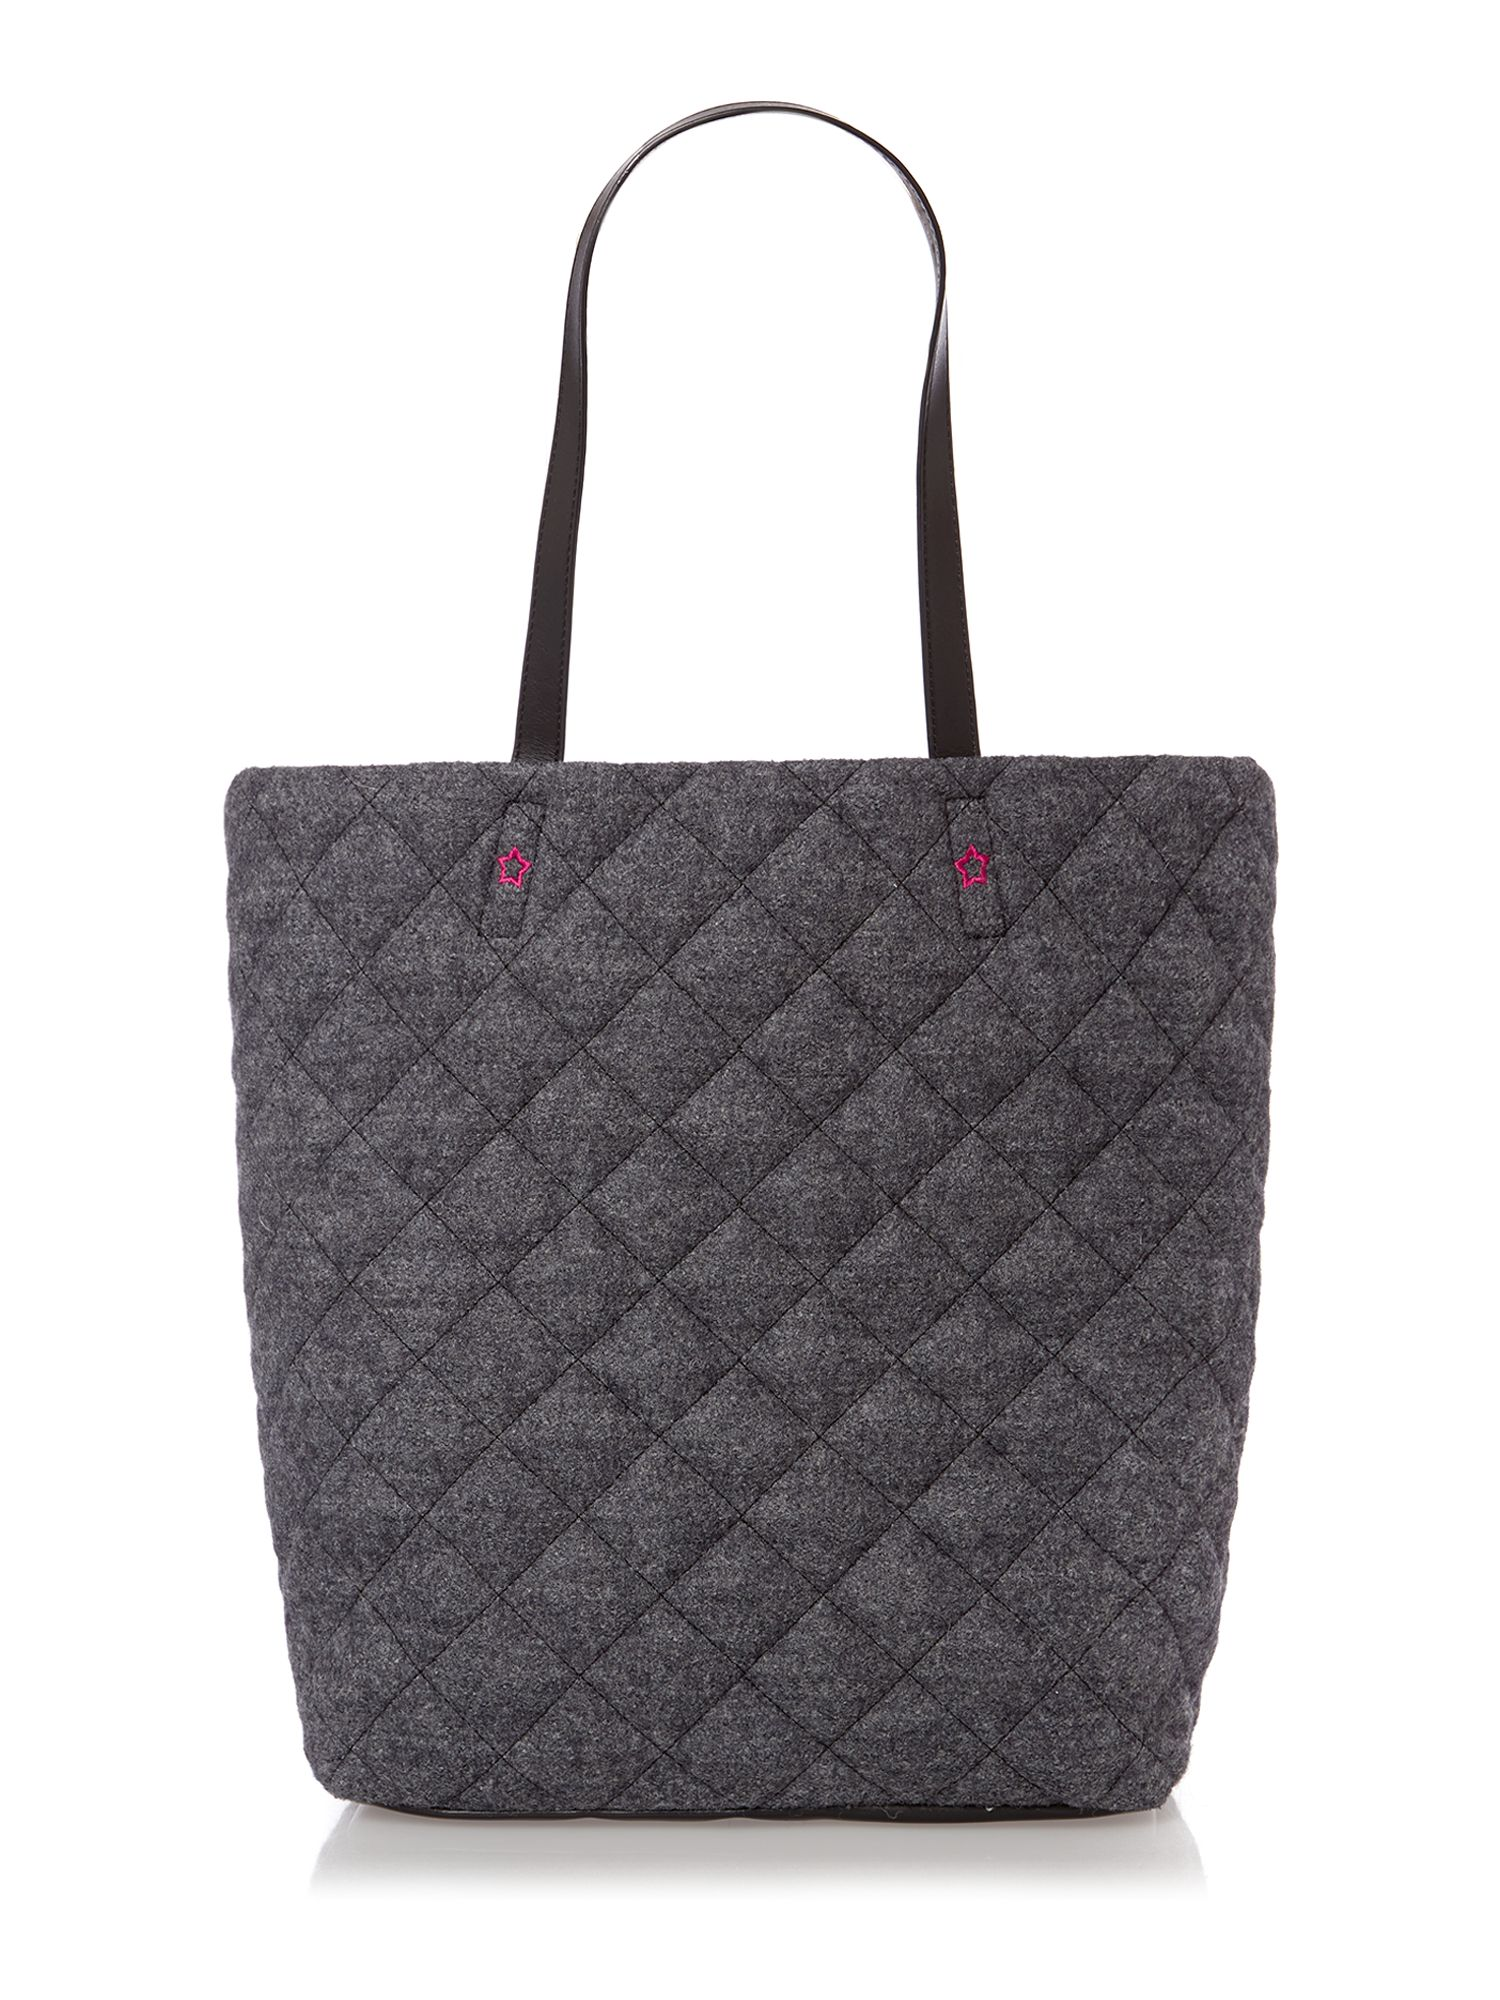 Boiled wool grey quilted tote bag